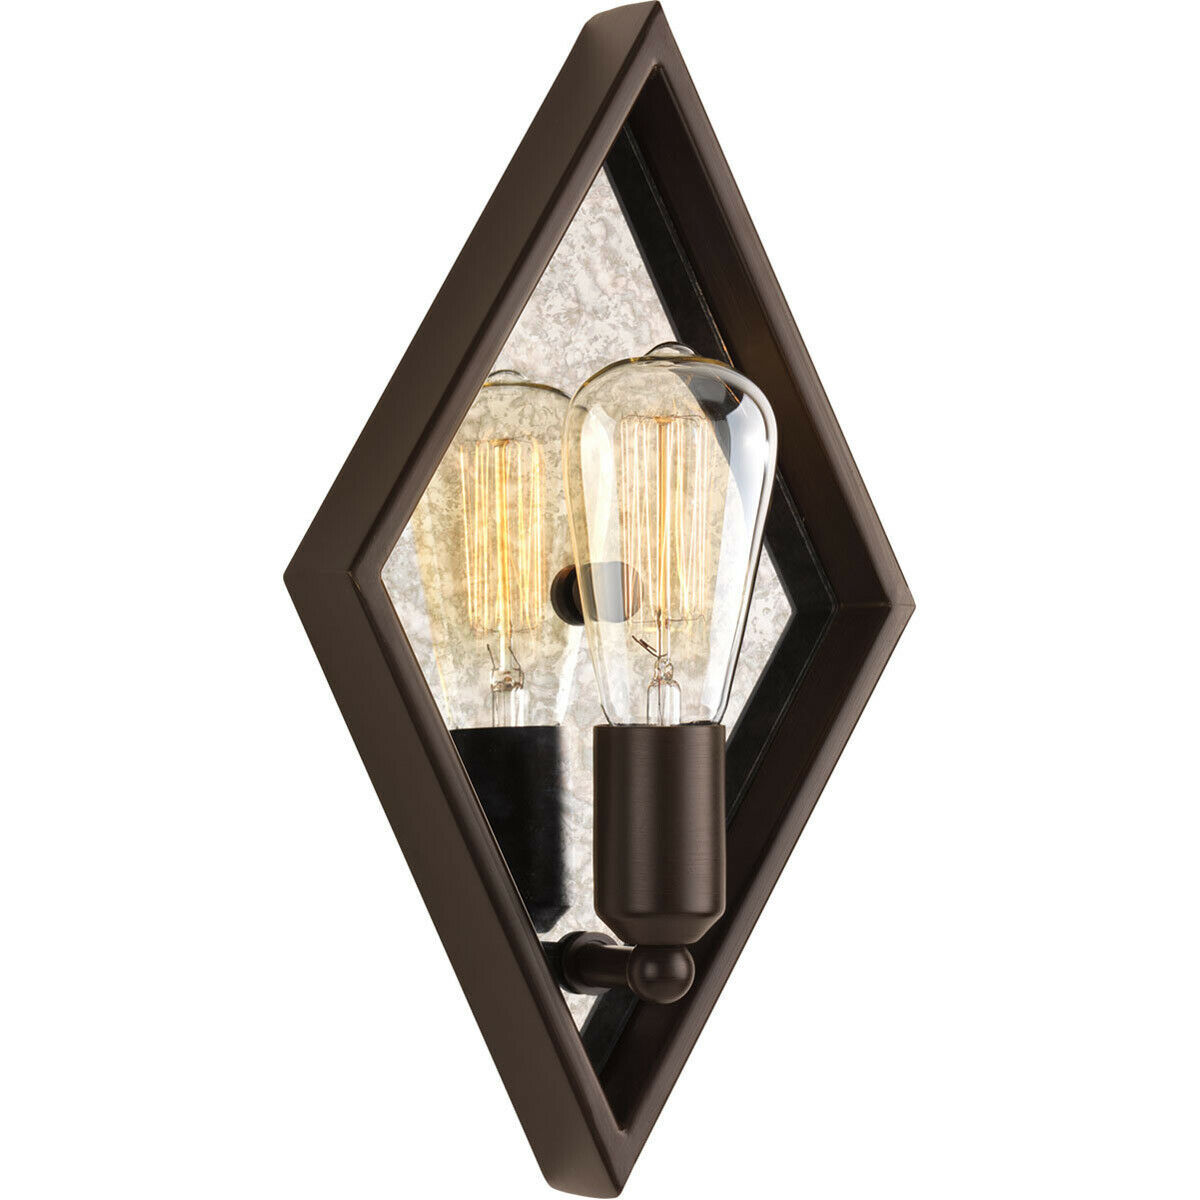 "Progress Lighting P710022-020 Formes 1 Light 8"" Wall Sconce in Antique Bronze - $17.77"